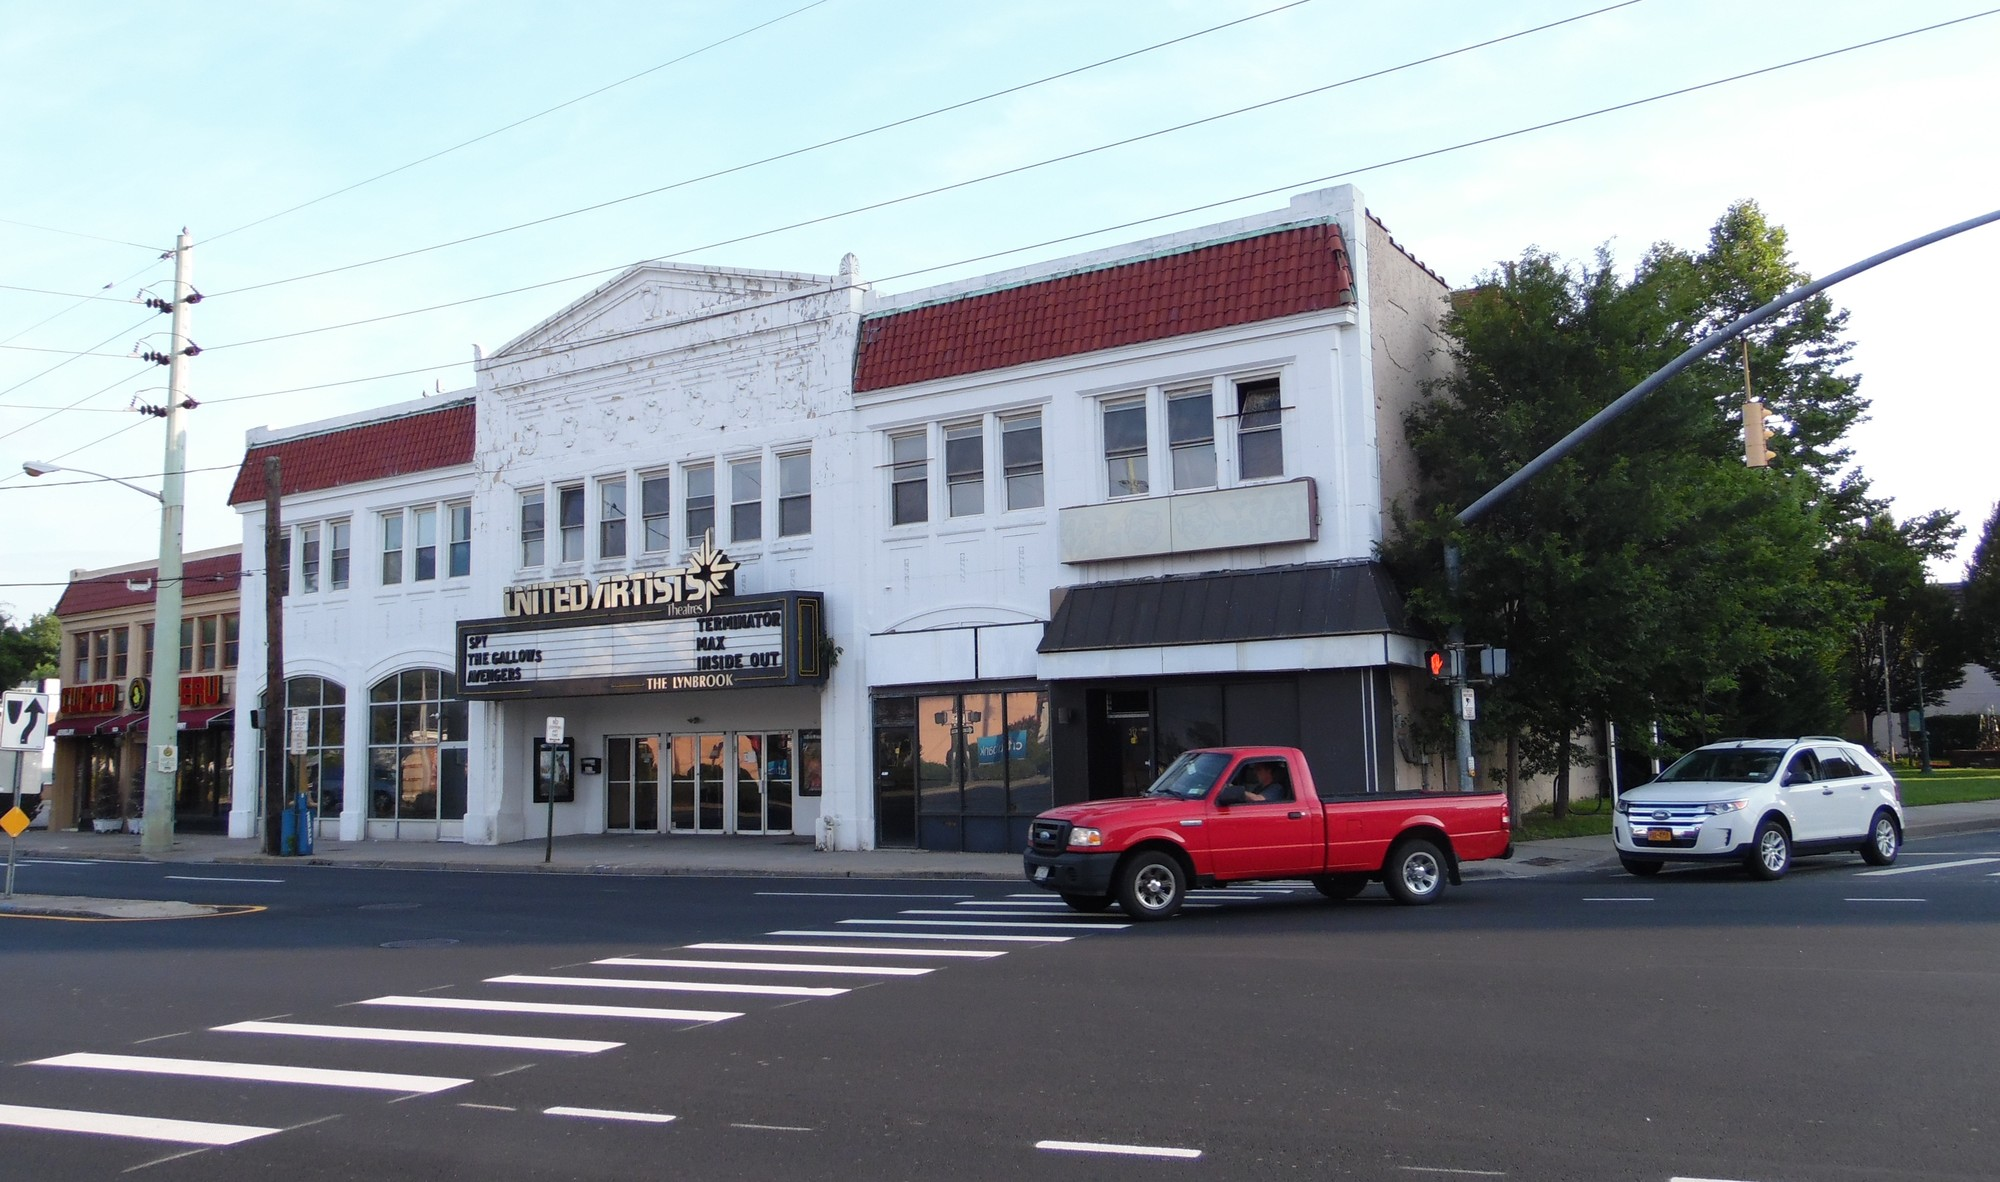 The United Artists theater, owned by Regal Cinemas, will be torn down to make room for a new, taller structure. The small Patrick Henry Park is pictured next to the theater, at right.